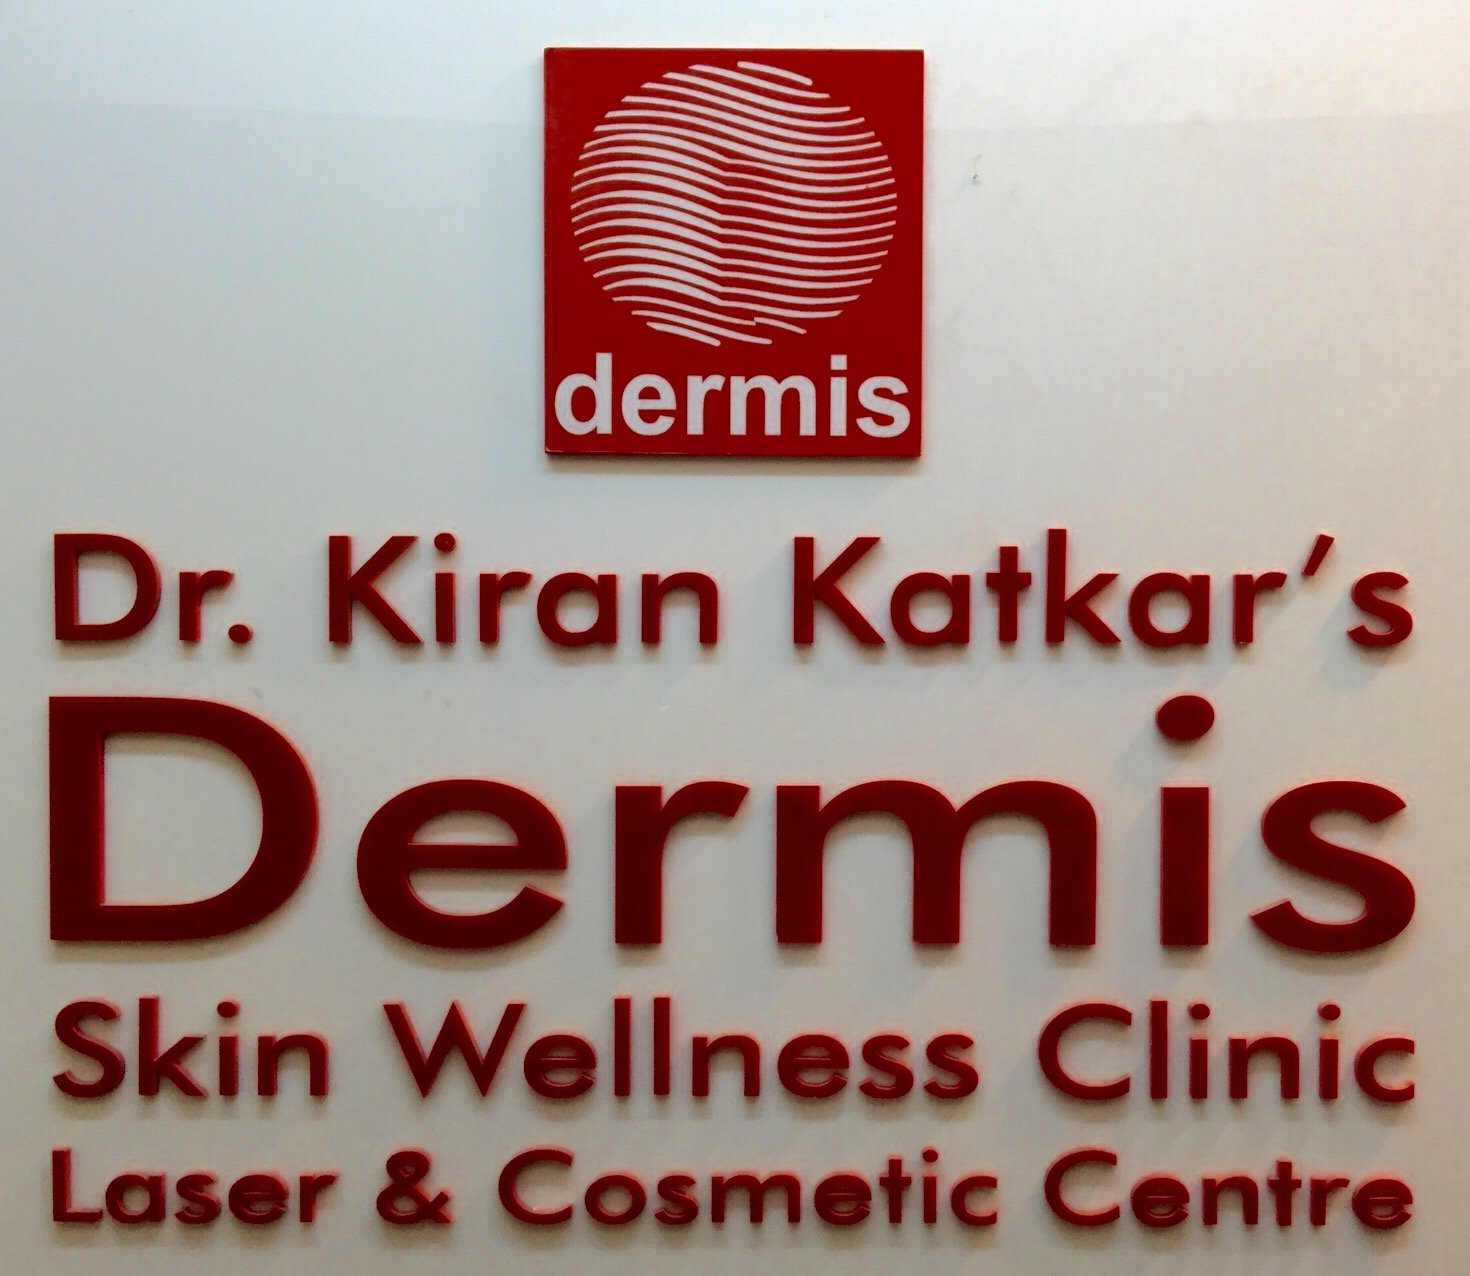 Dermis Skin Wellness Clinic